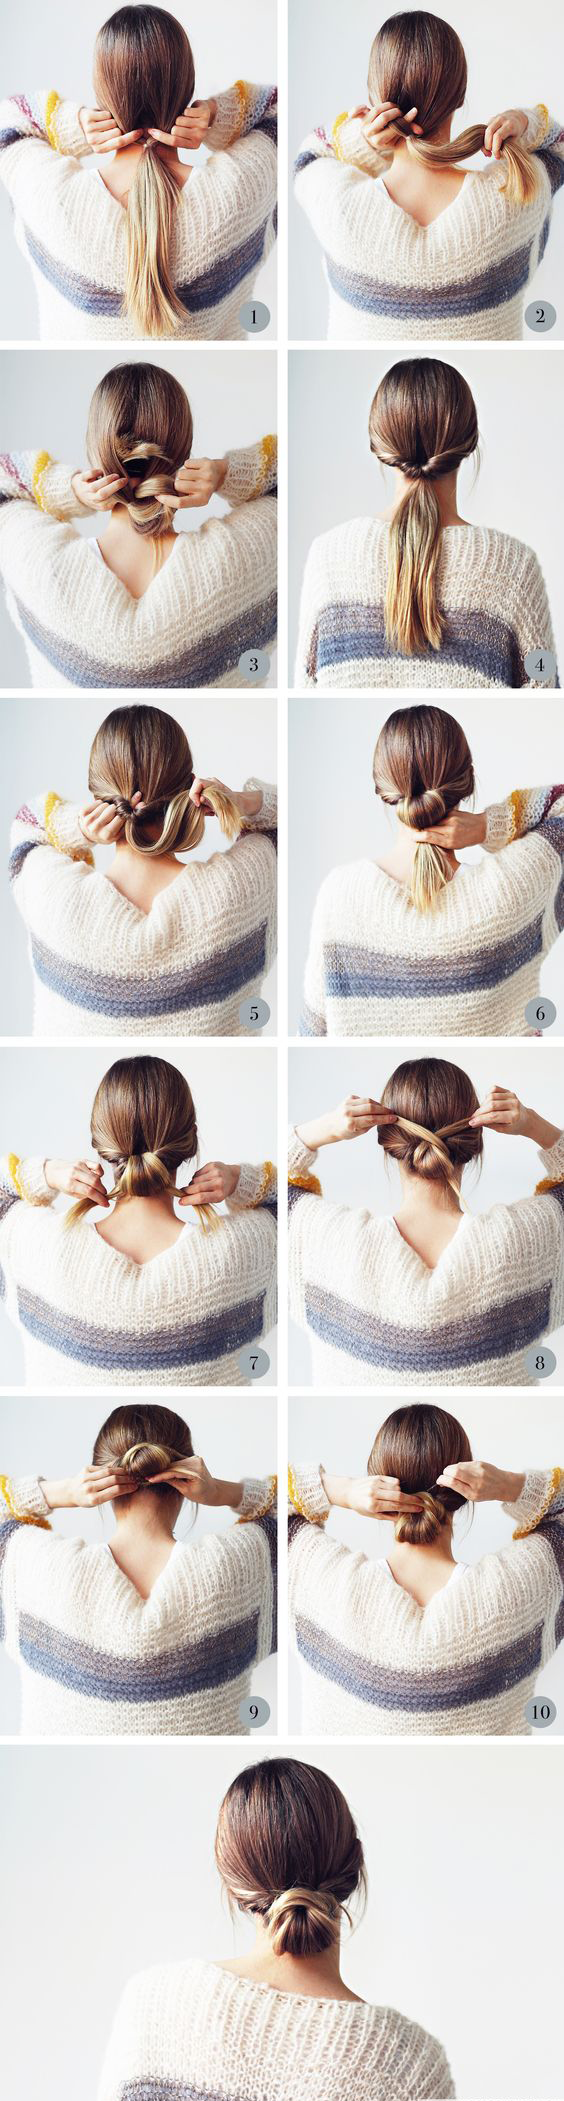 How to Braid Messy Bun